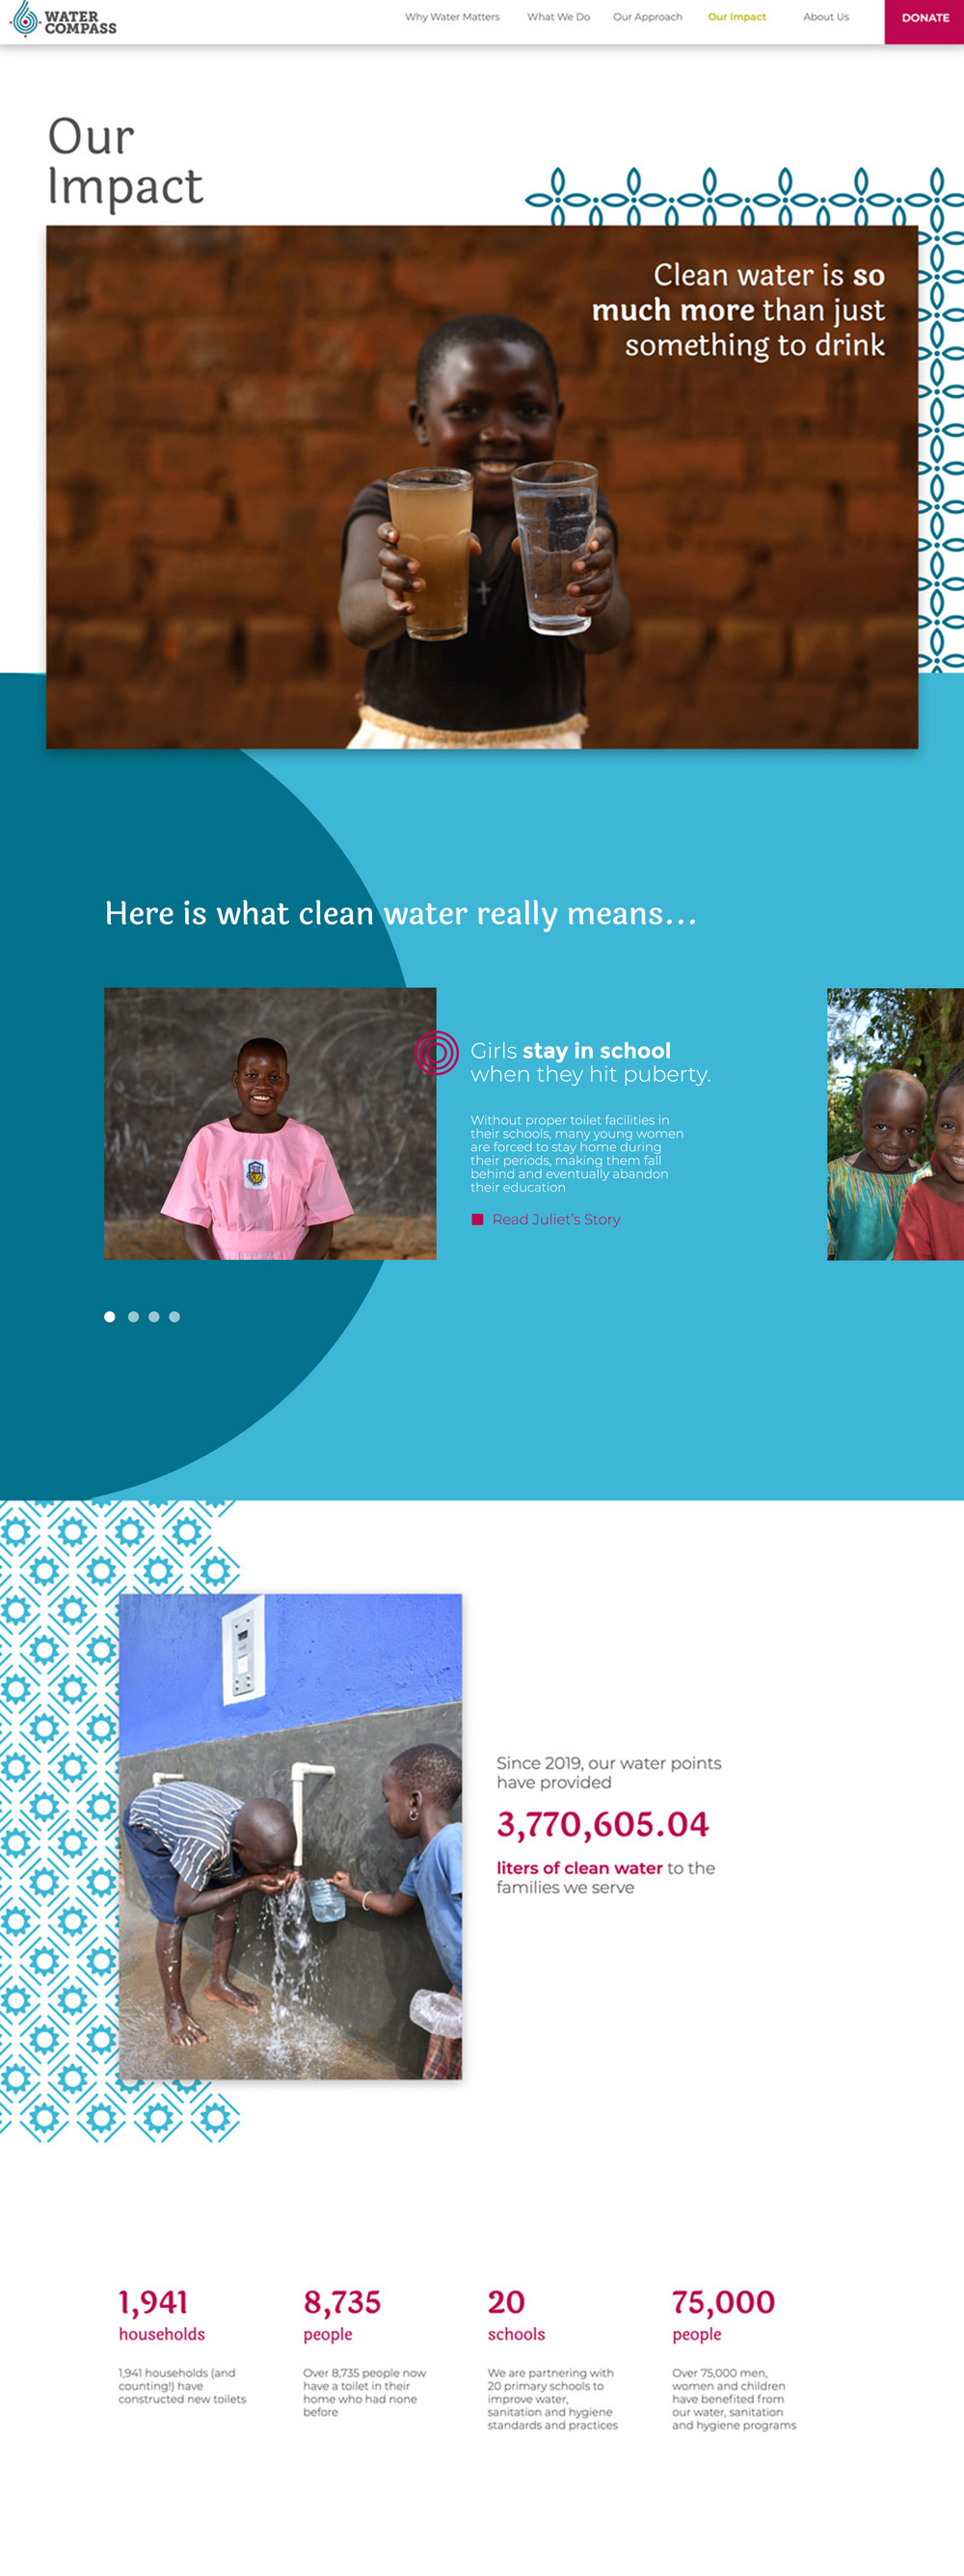 Screen shot of Impact page from Water Compass website